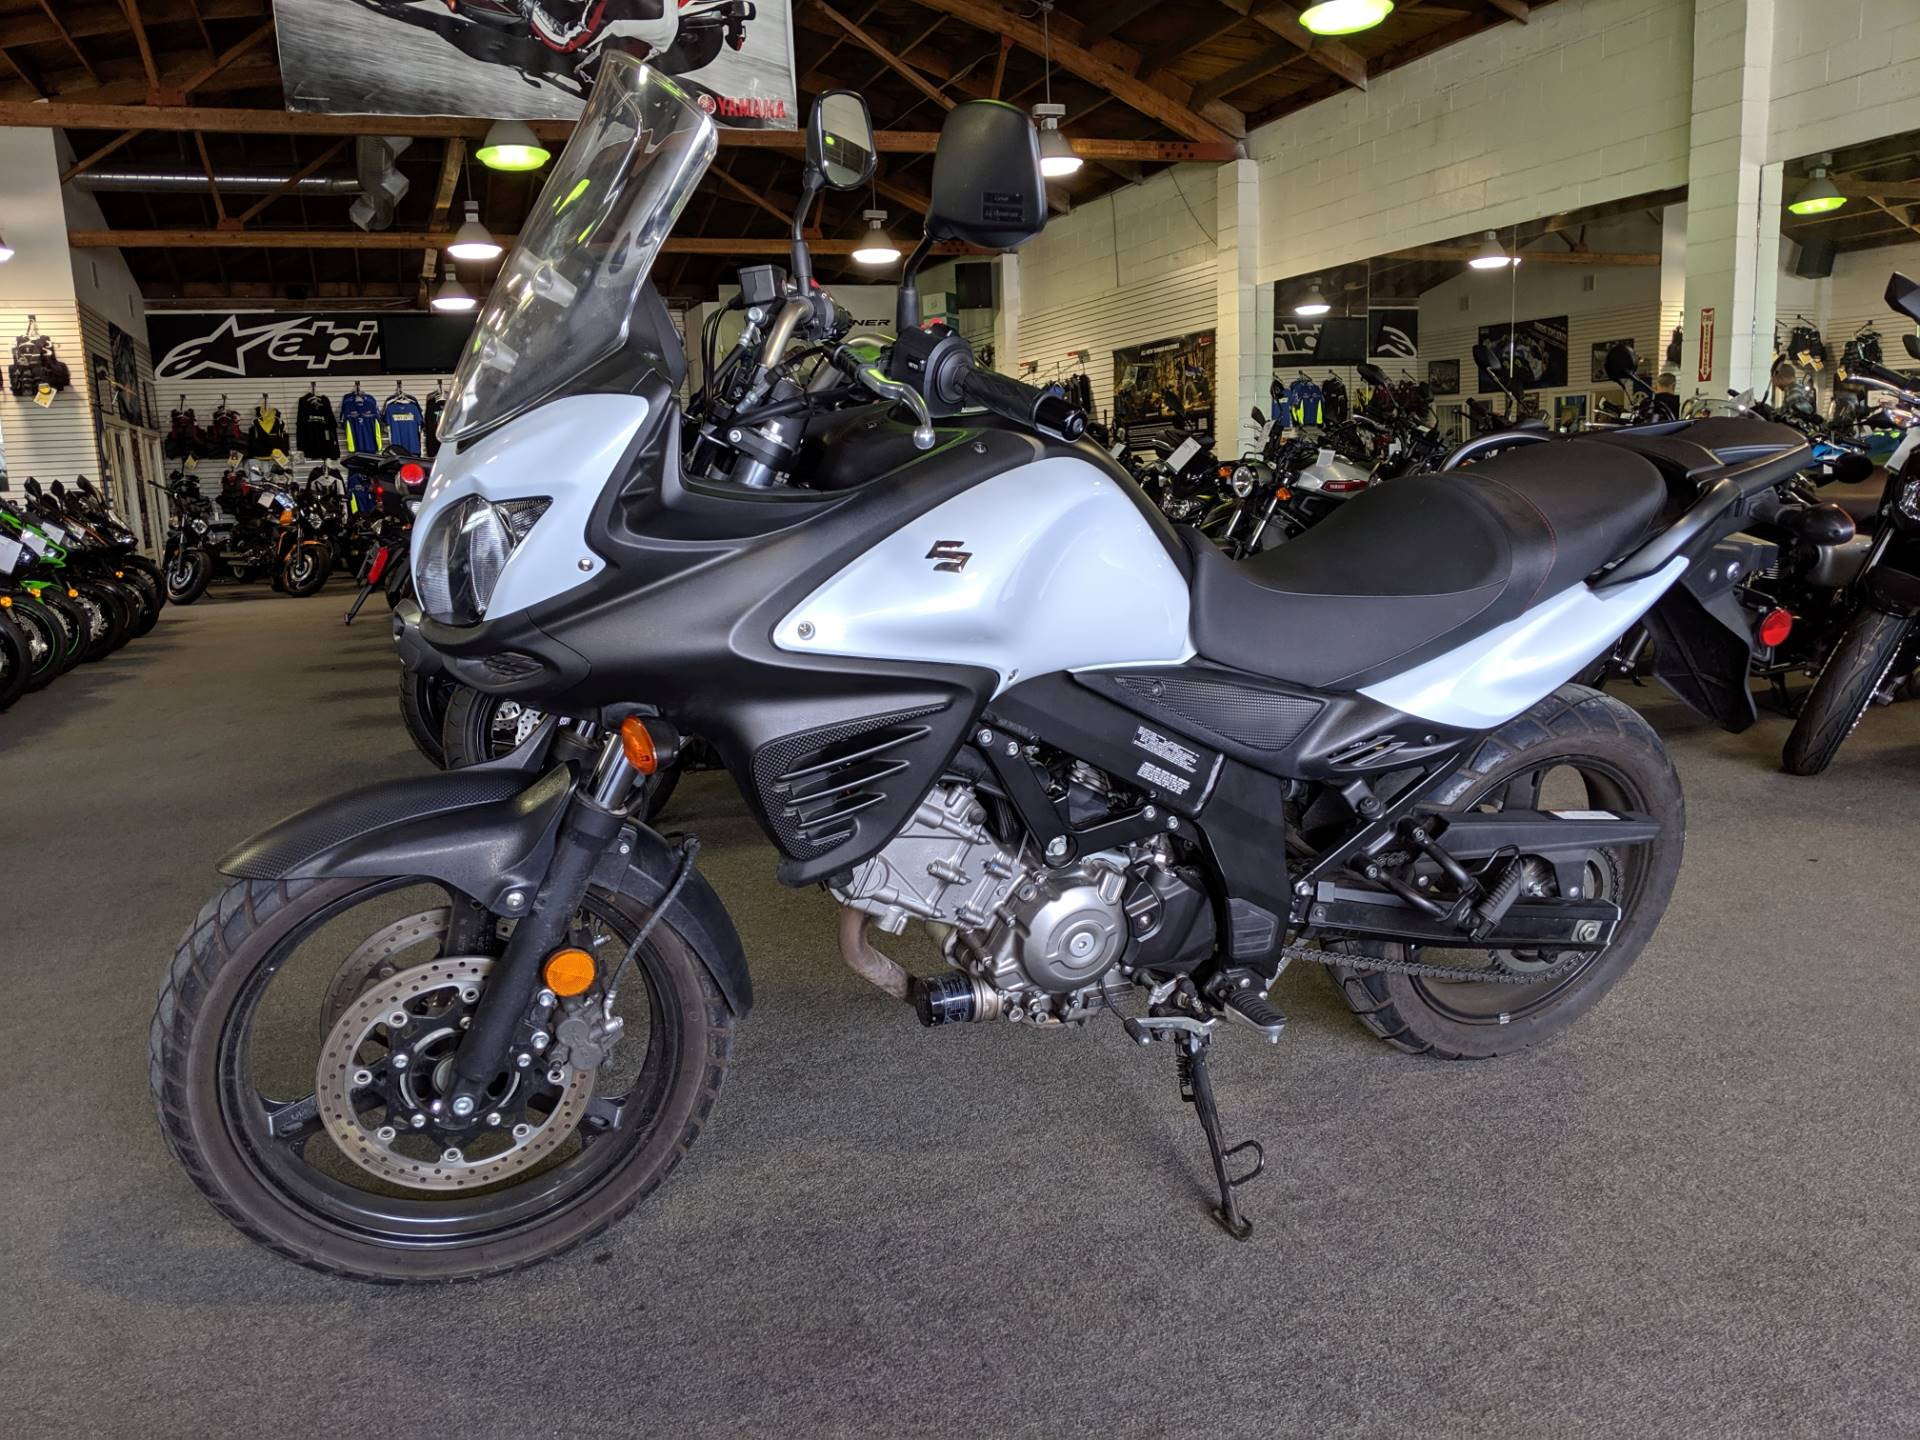 2014 Suzuki V-Strom 650 ABS in Santa Clara, California - Photo 1